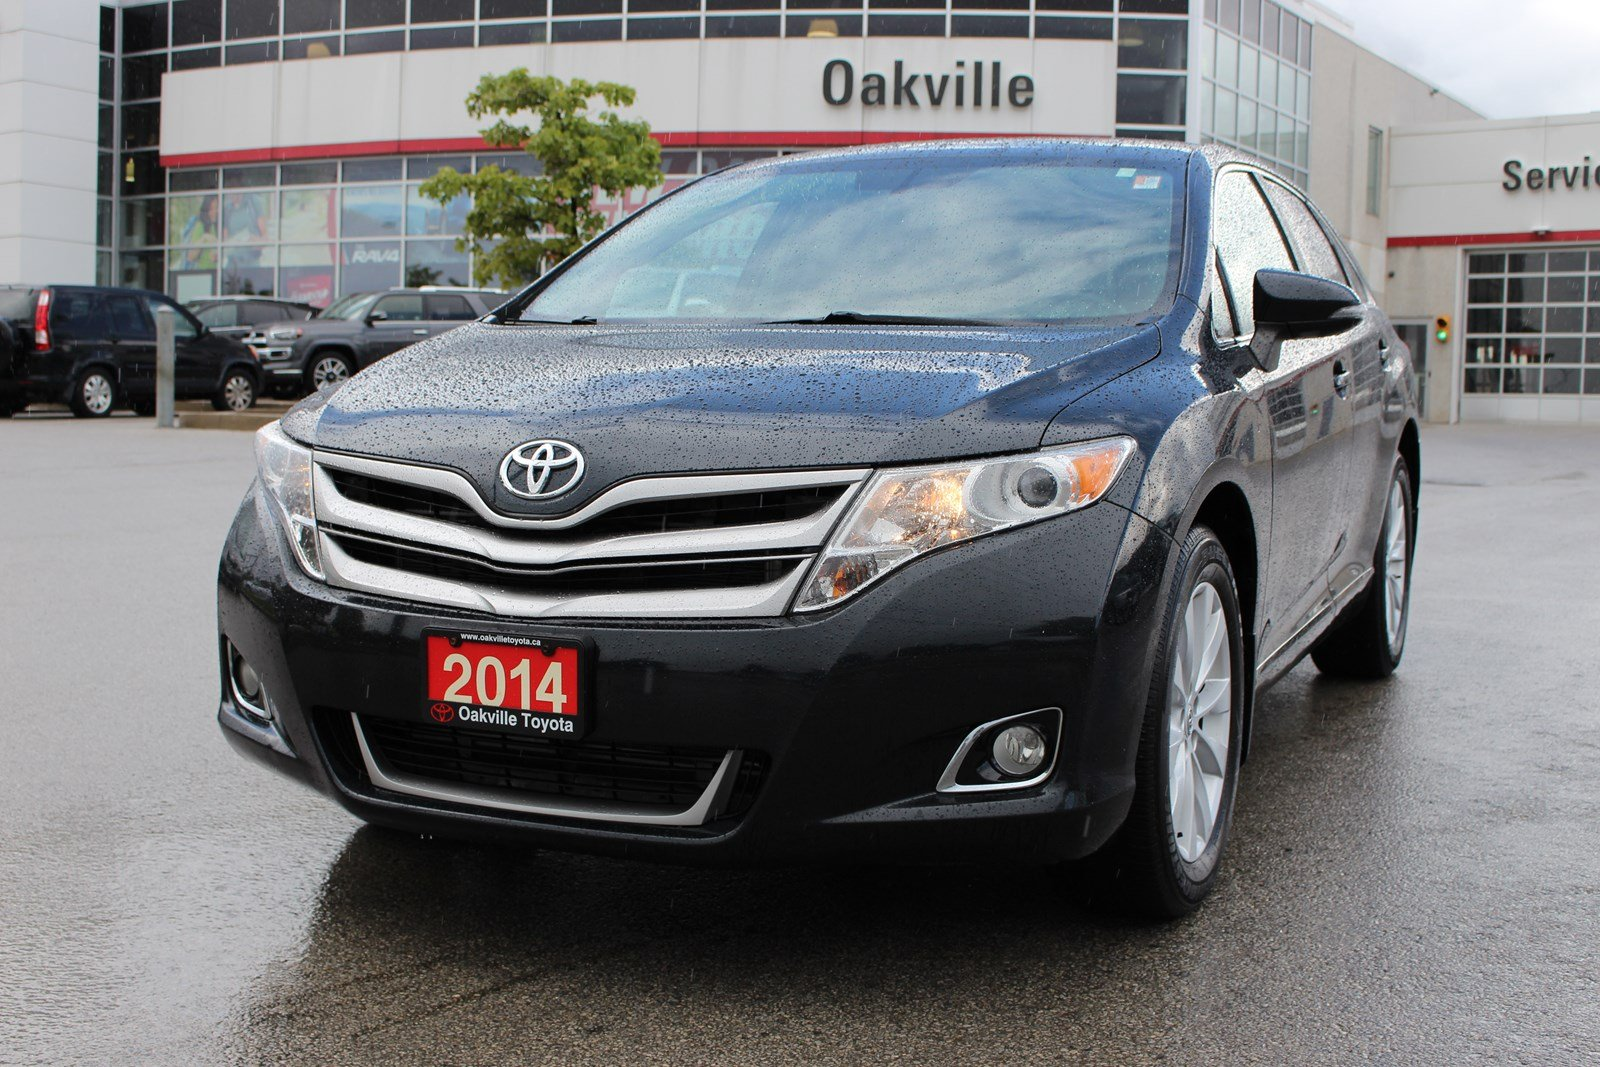 Pre-Owned 2014 Toyota Venza XLE AWD w/ Leather, Panoramic Roof & Backup Camera